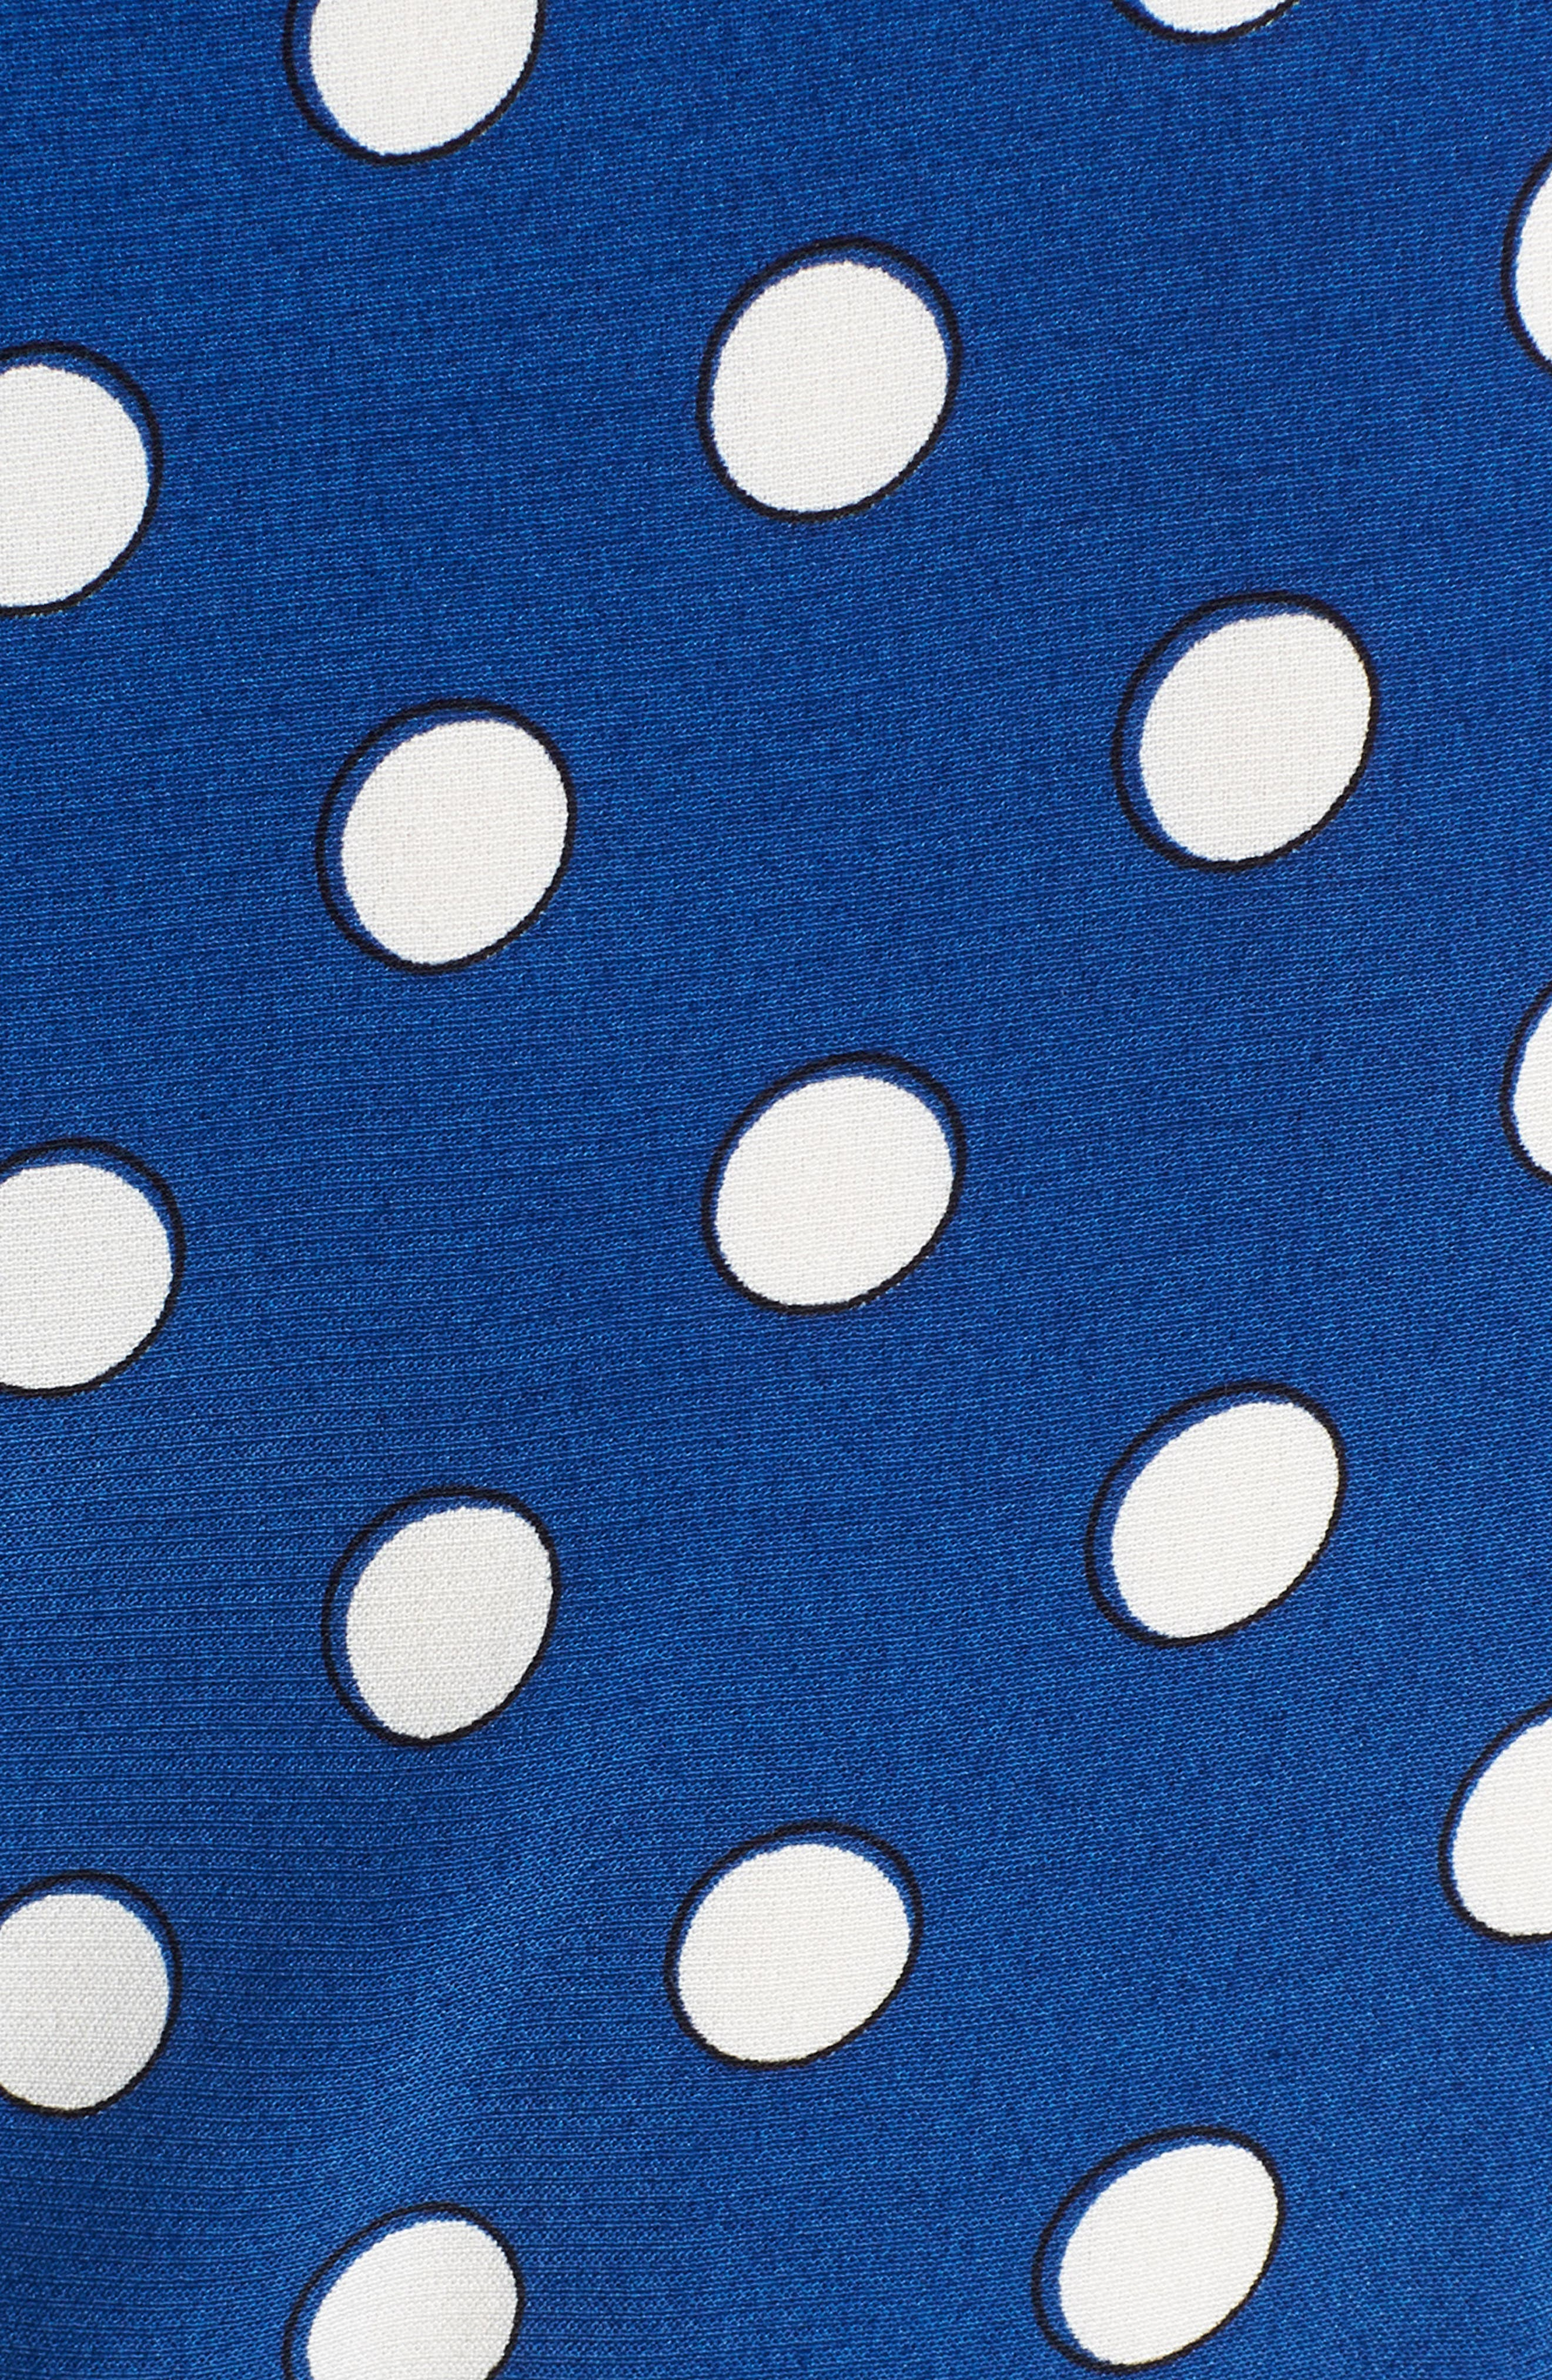 Polka Dot Wrap Dress,                             Alternate thumbnail 6, color,